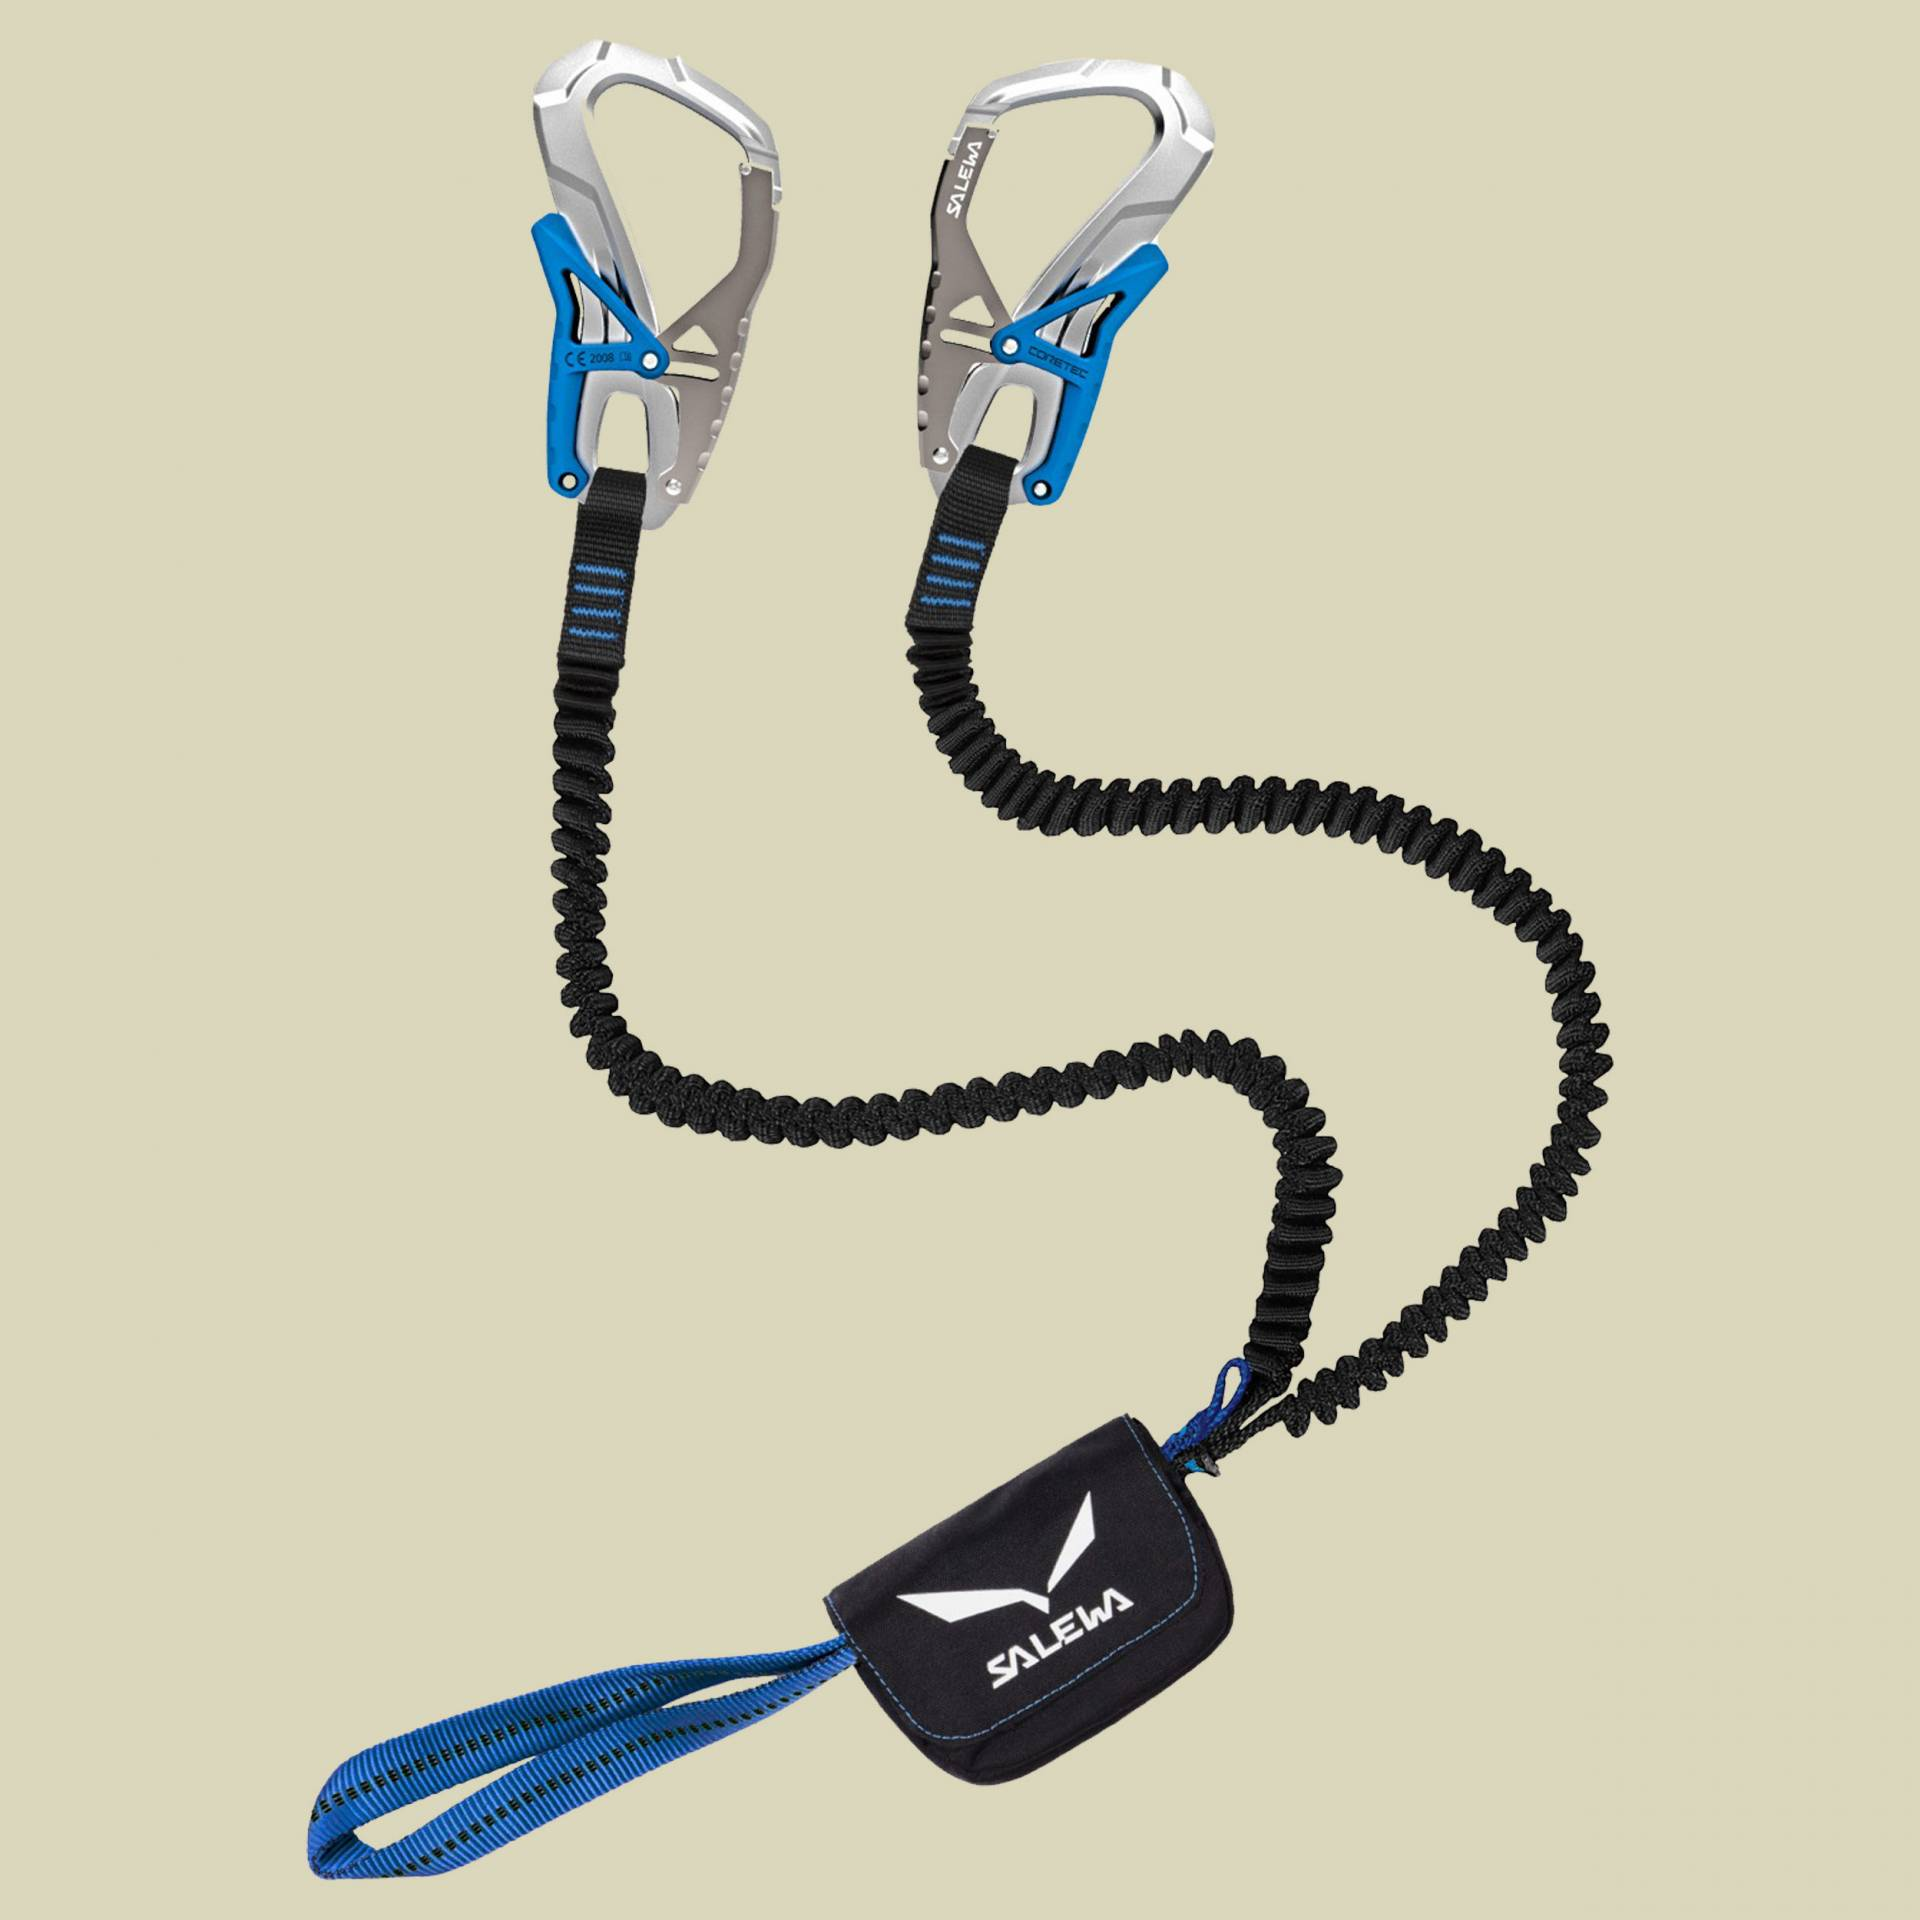 Salewa Set Via Ferrata Ergo Core Klettersteigset  Farbe: silver-royal blue von Salewa